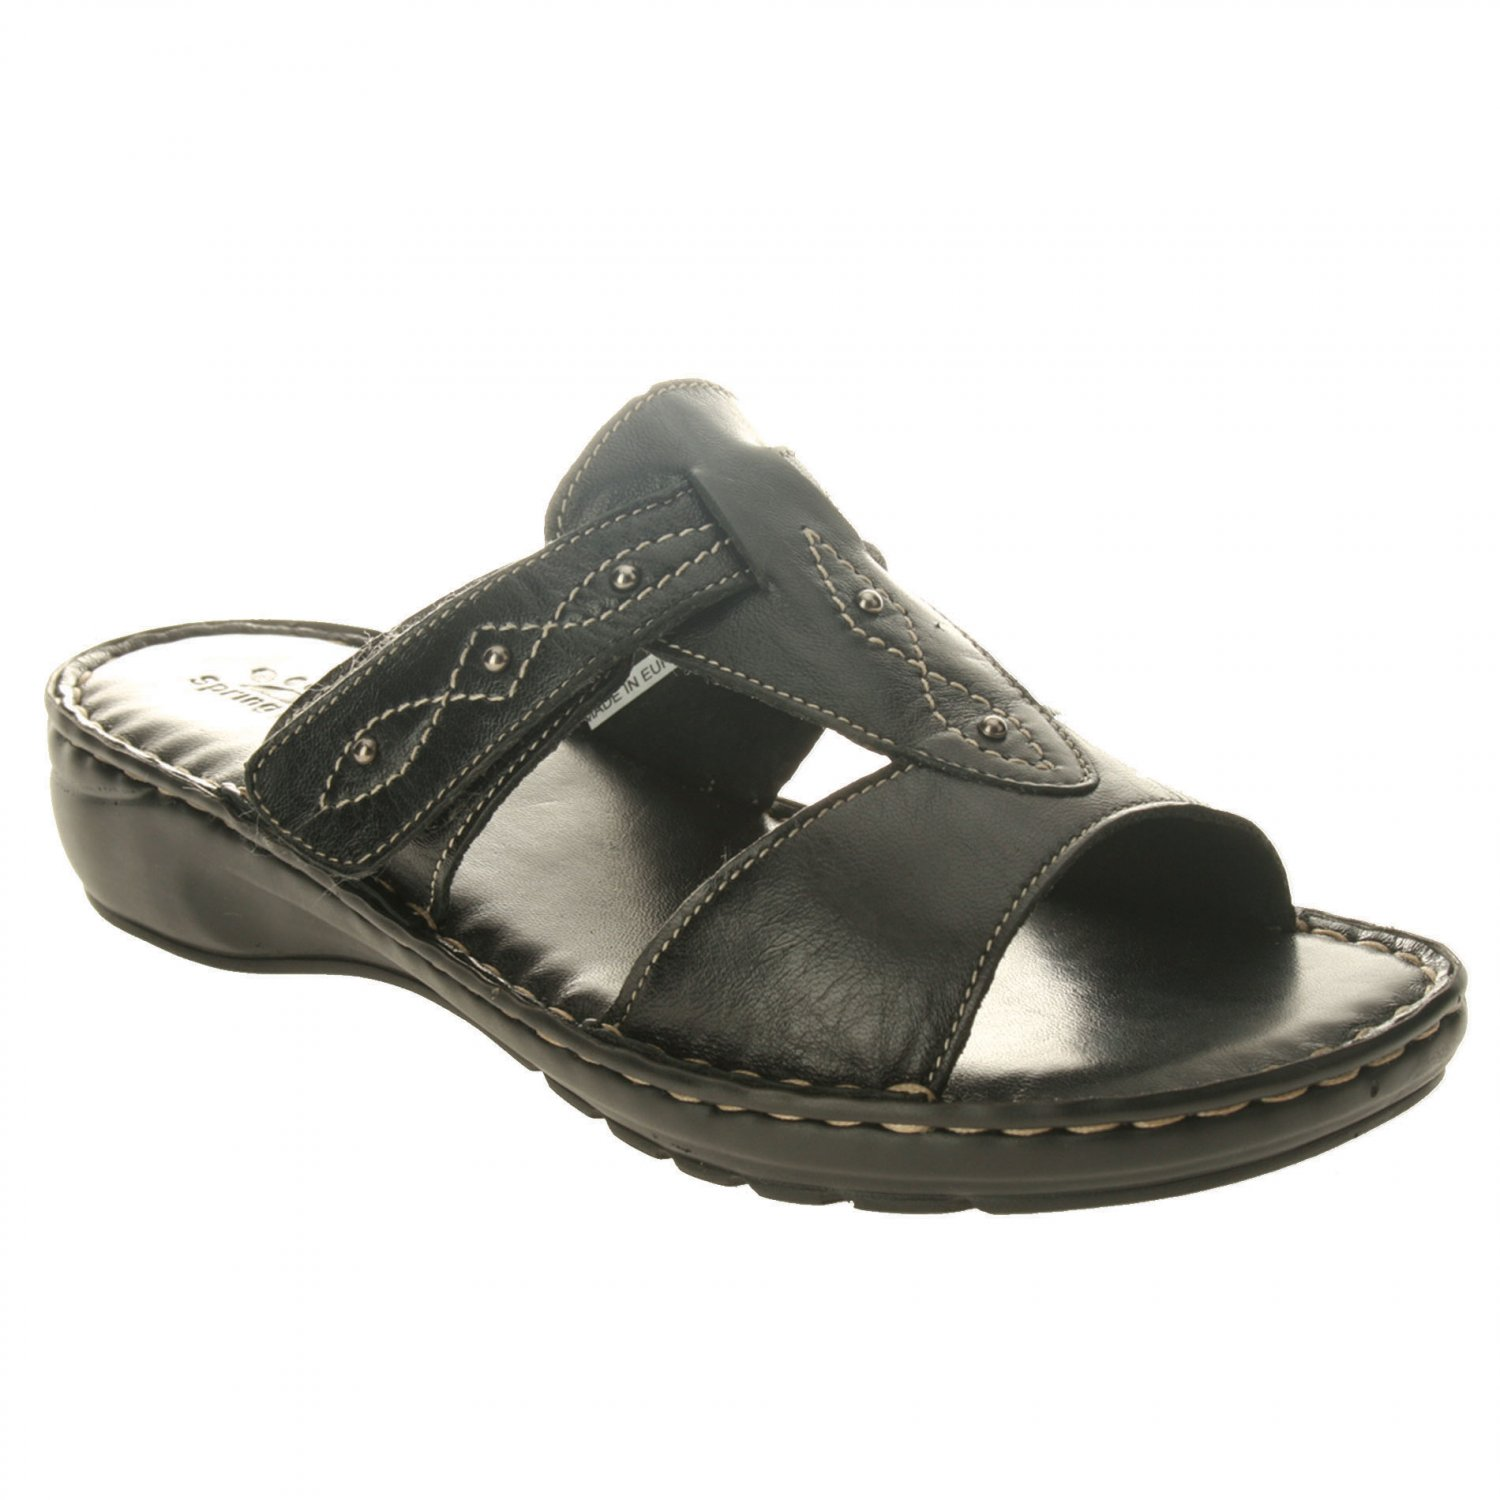 Spring Step ANJA Sandals Shoes All Sizes & Colors $89.